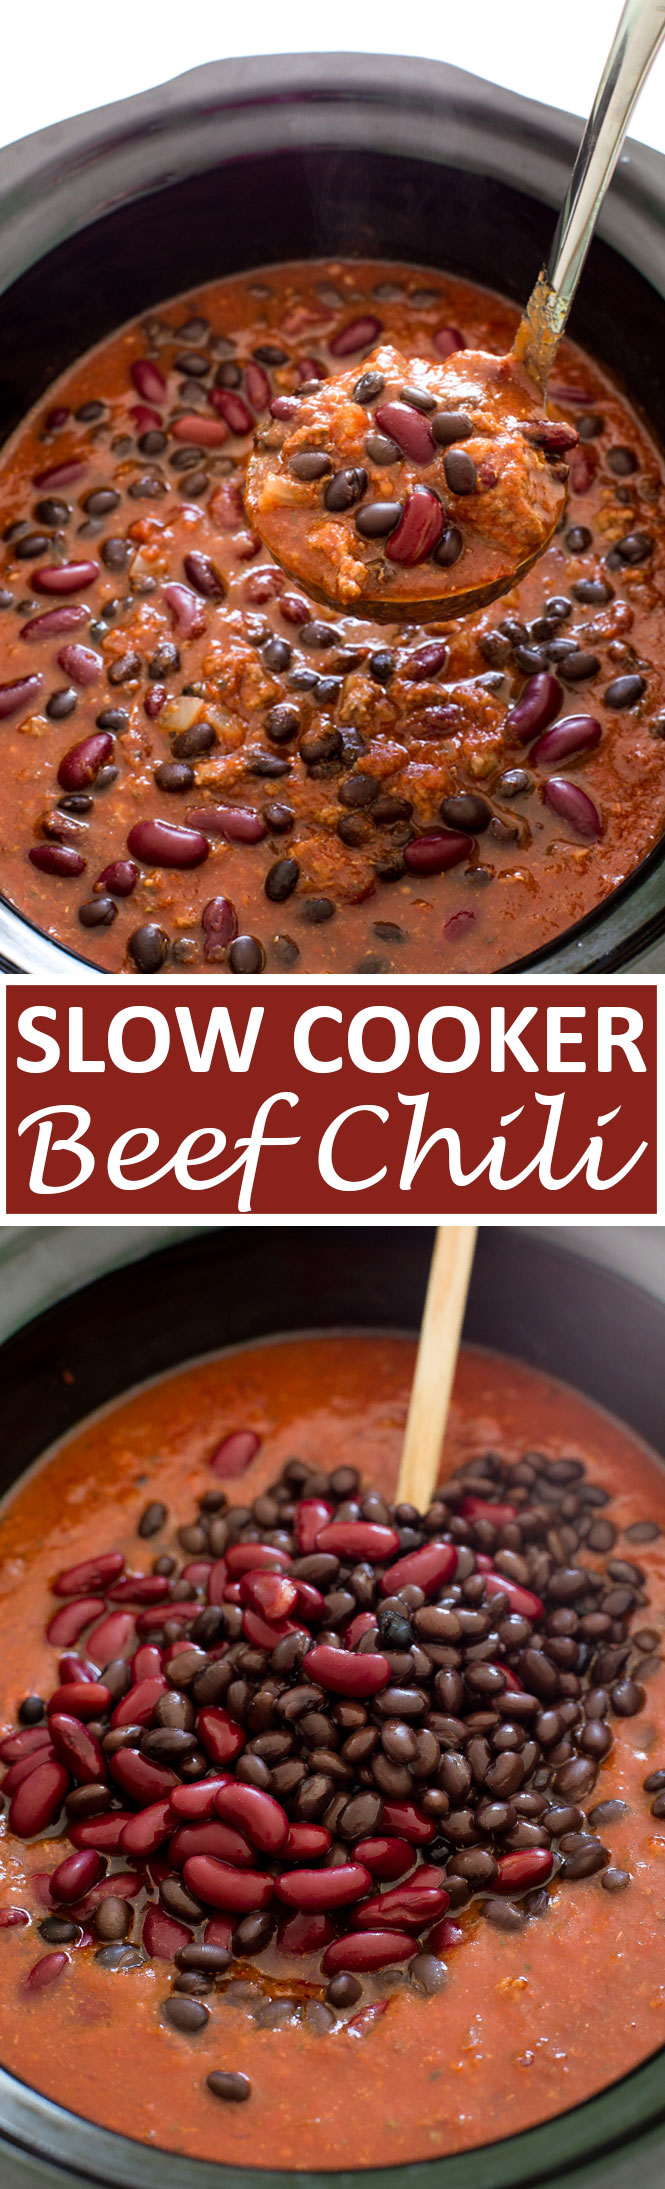 The Best Slow Cooker Chili Recipe Chef Savvy Recipe Slow Cooker Chili Slow Cooker Chili Recipe Best Slow Cooker Chili